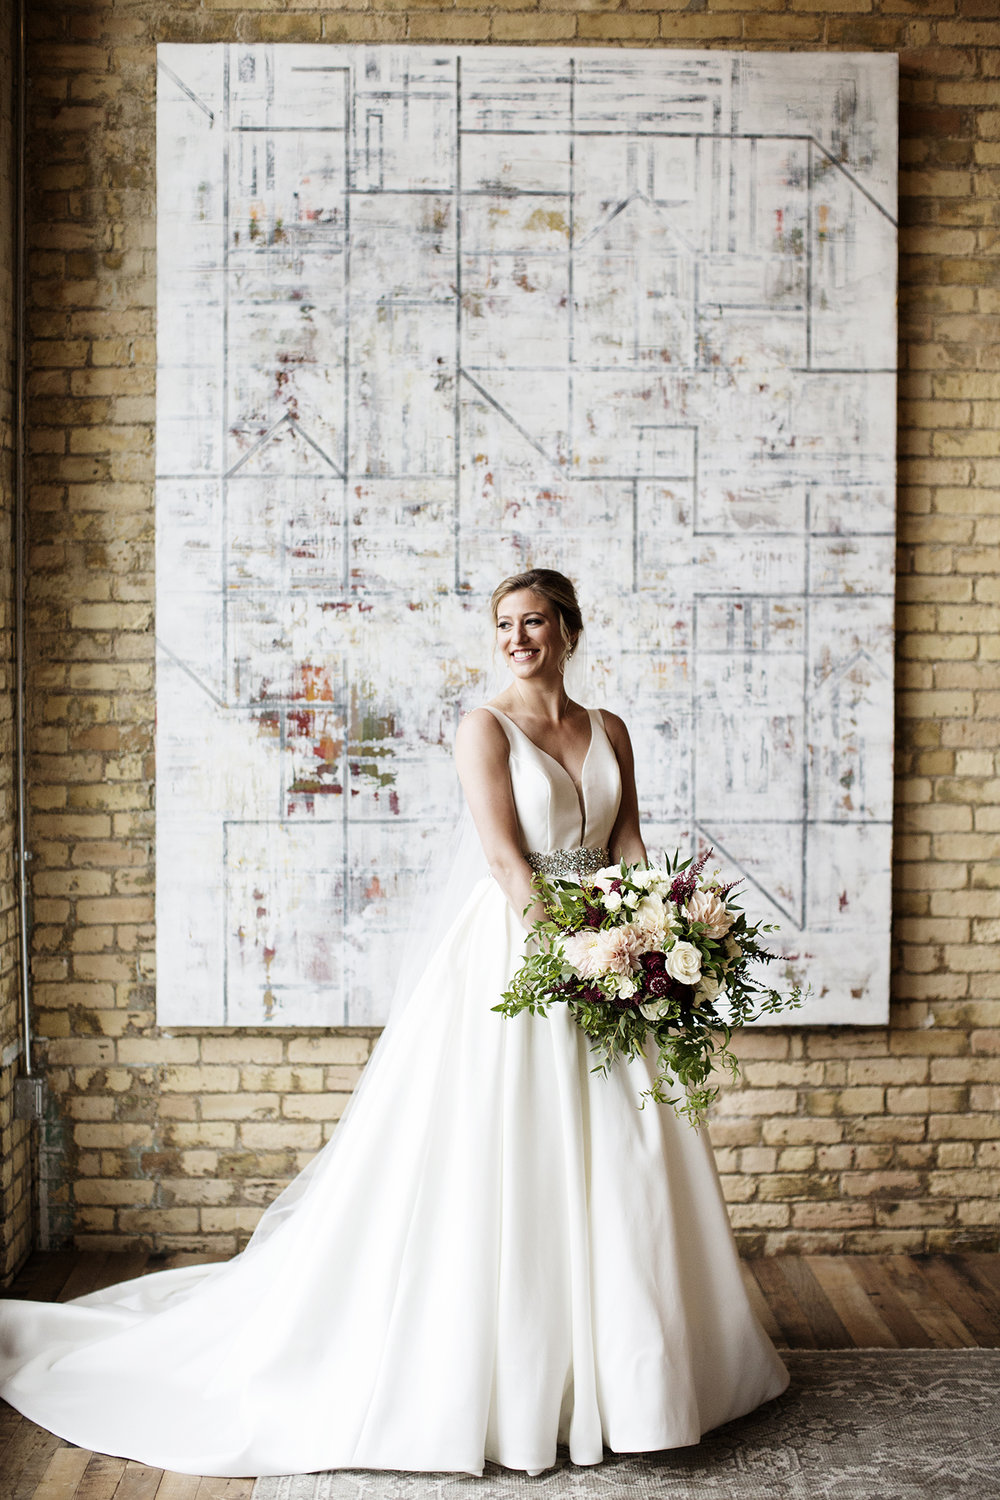 Machine Shop Wedding Photos | Photography by Photogen Inc. | Eliesa Johnson | Based in Minneapolis, Minnesota